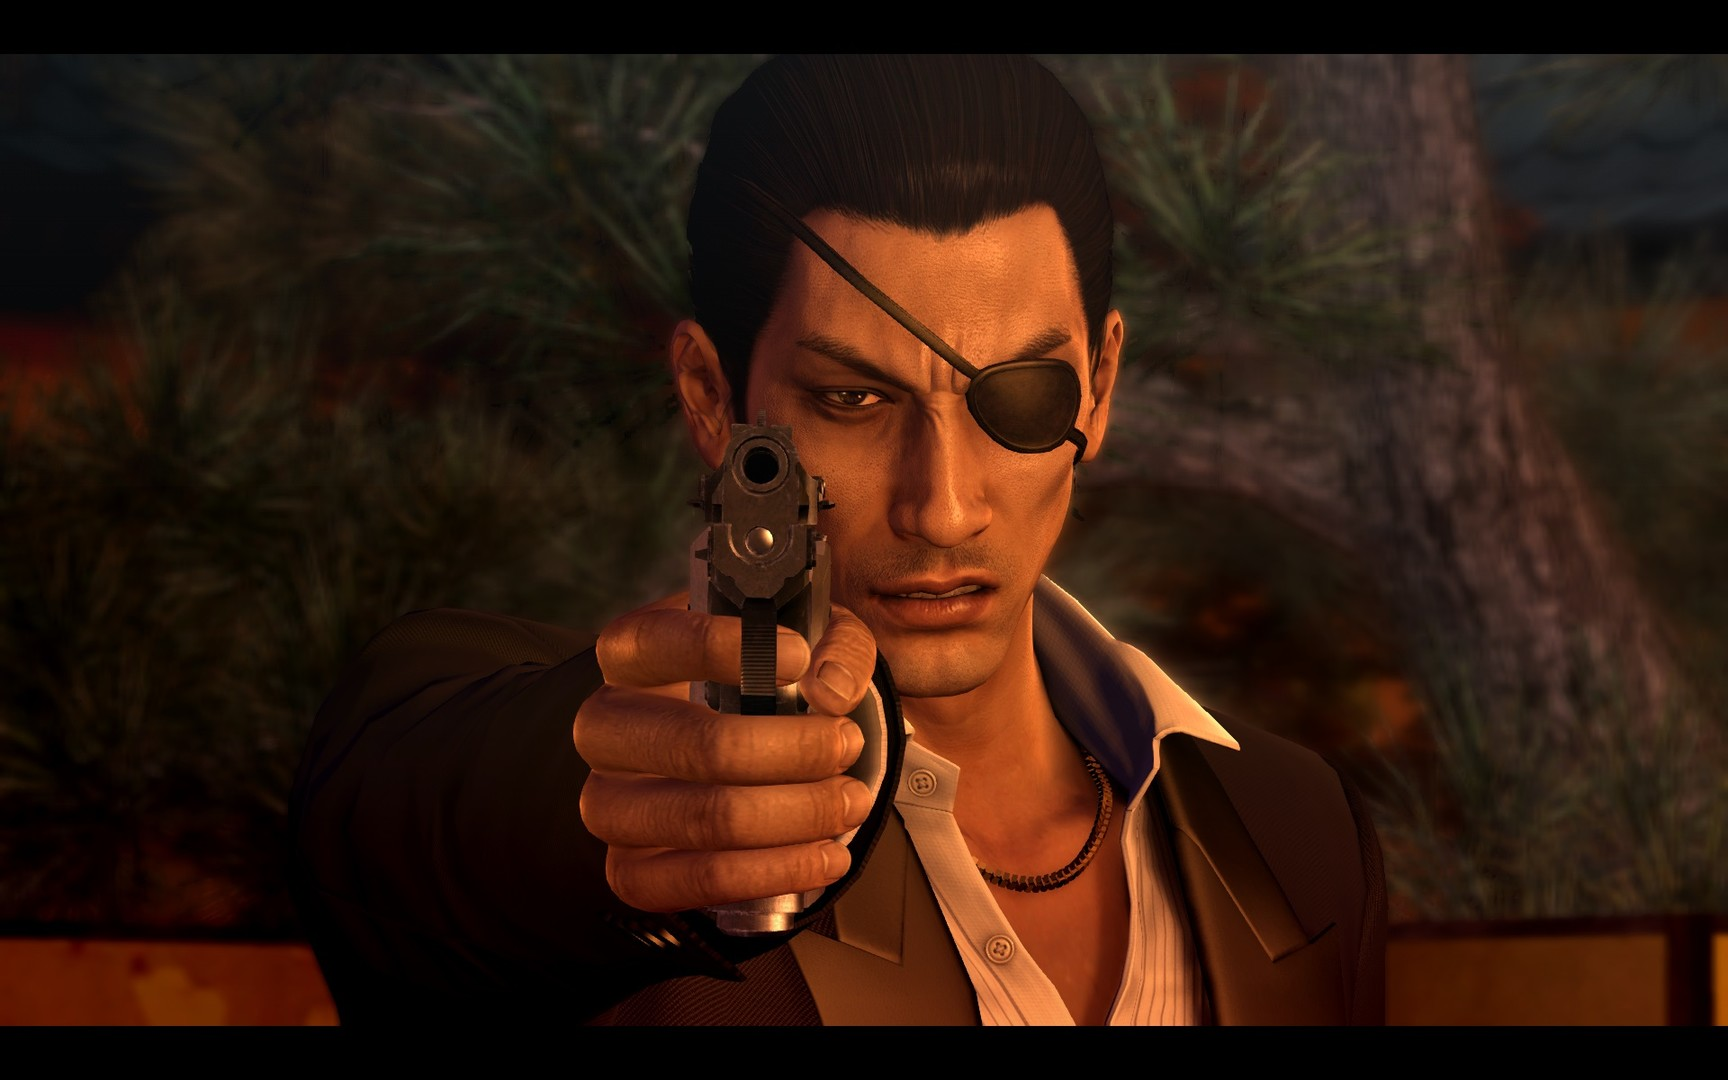 Yakuza 0 On Steam He has served as the captain of the shimano family , as well as the patriarch of the majima family. yakuza 0